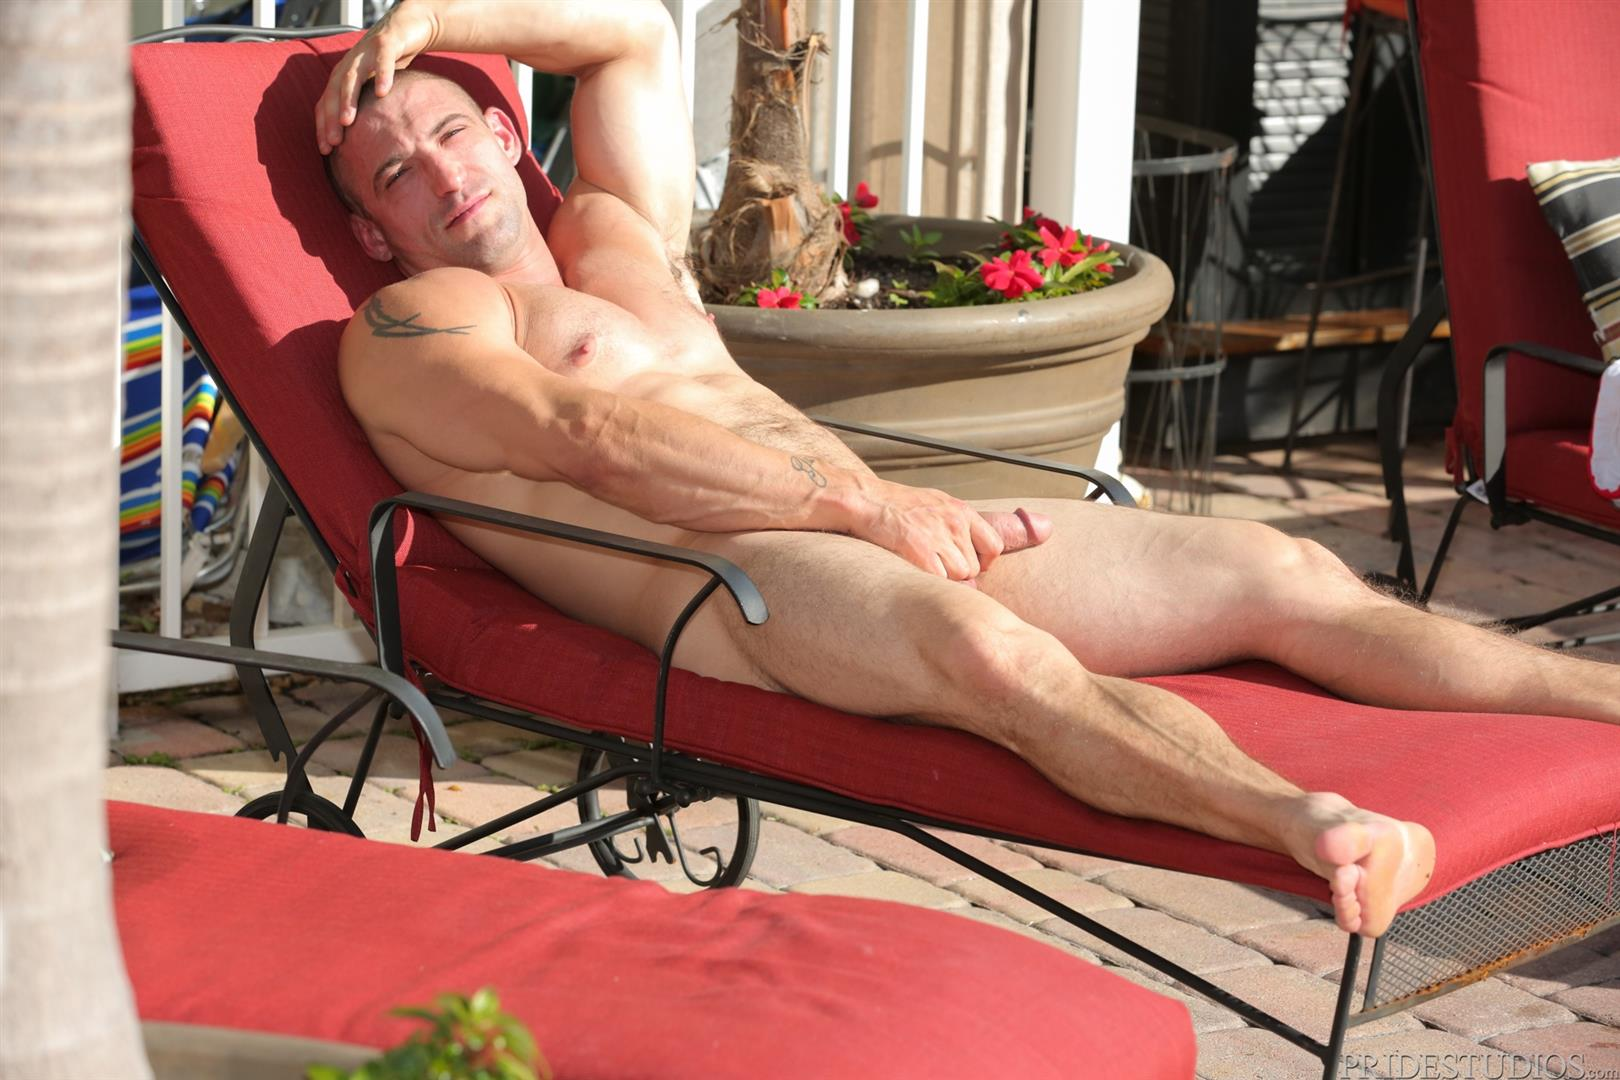 Dylan-Lucas-Timothy-Rivers-and-Ceasar-Camaro-Younger-Guy-Fucking-A-Muscle-Daddy-04 Muscular Pool Daddy Takes A Younger Cock Up The Ass At A Palm Springs Gay Resort